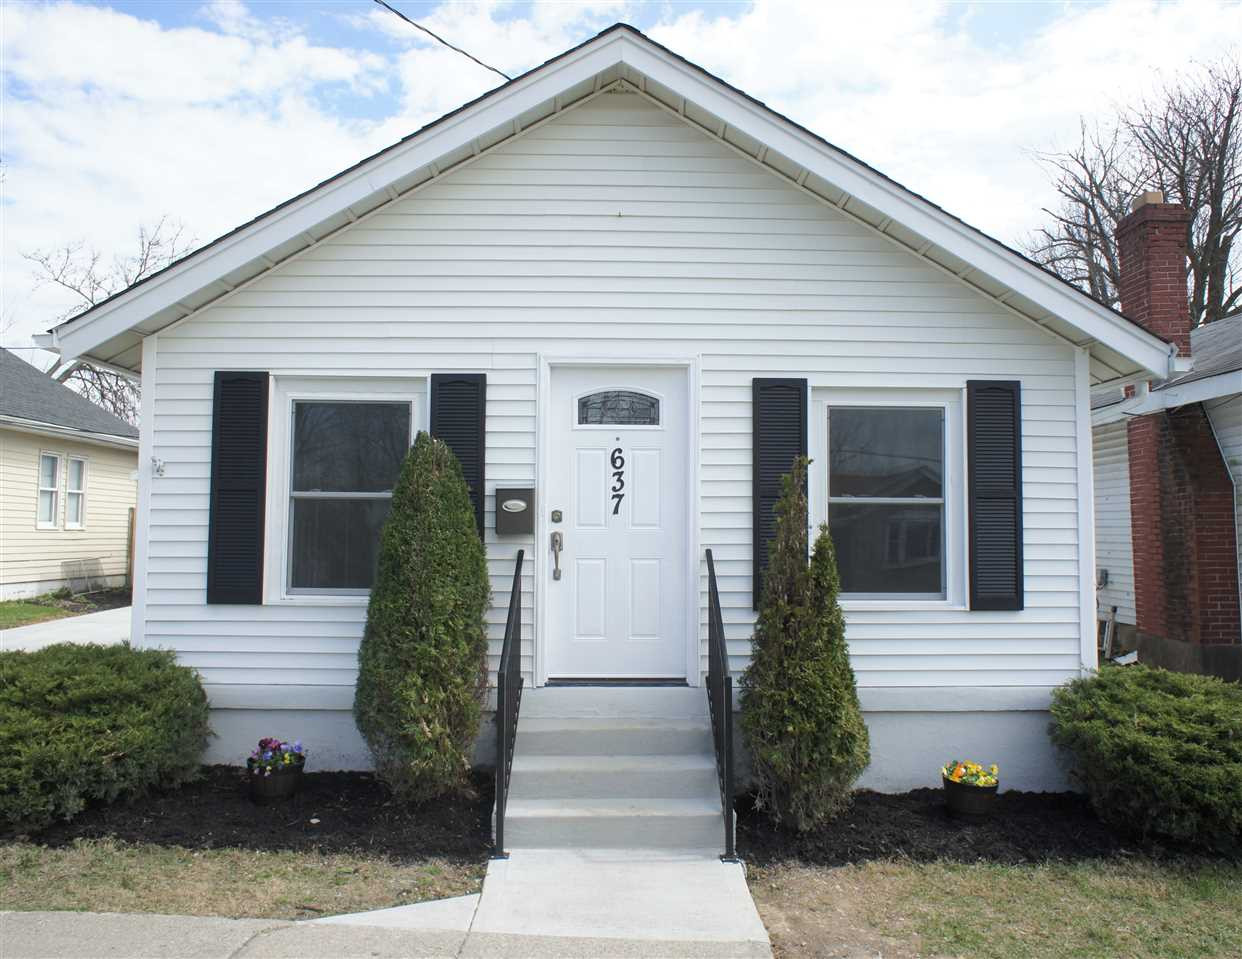 Photo 2 for 637 Maple Ave Elsmere, KY 41018